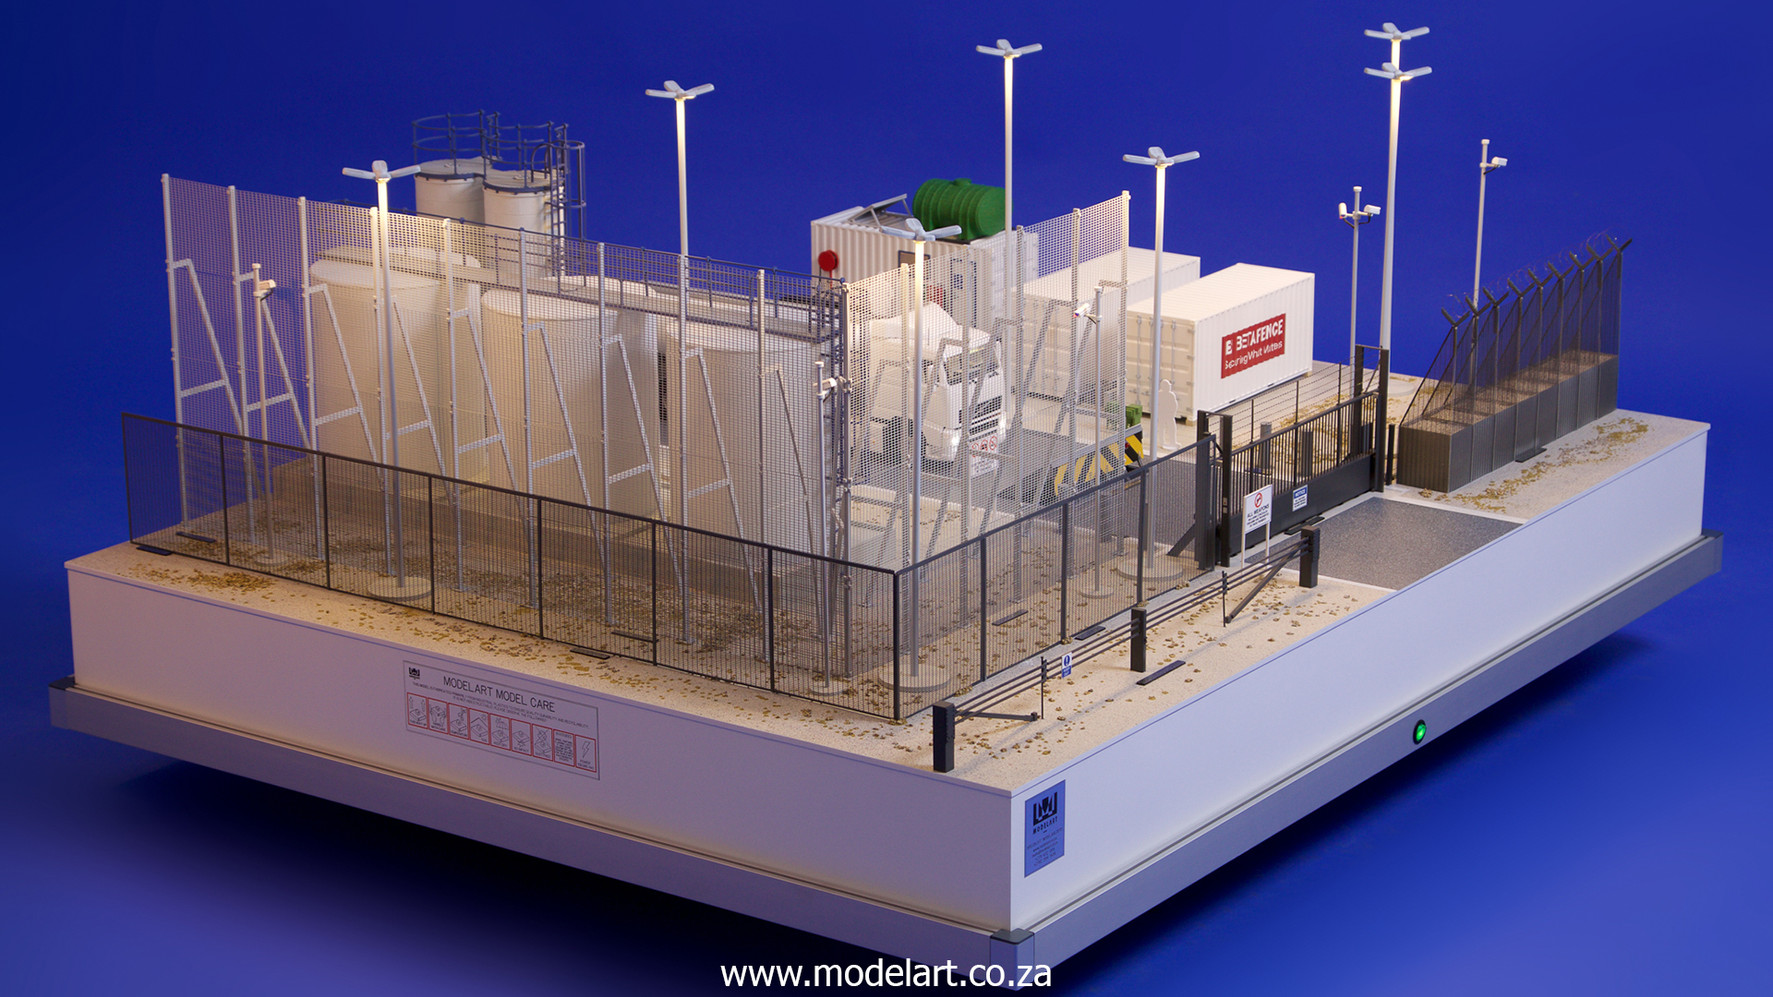 Modelart-Architectural-Scale-Model-Engin